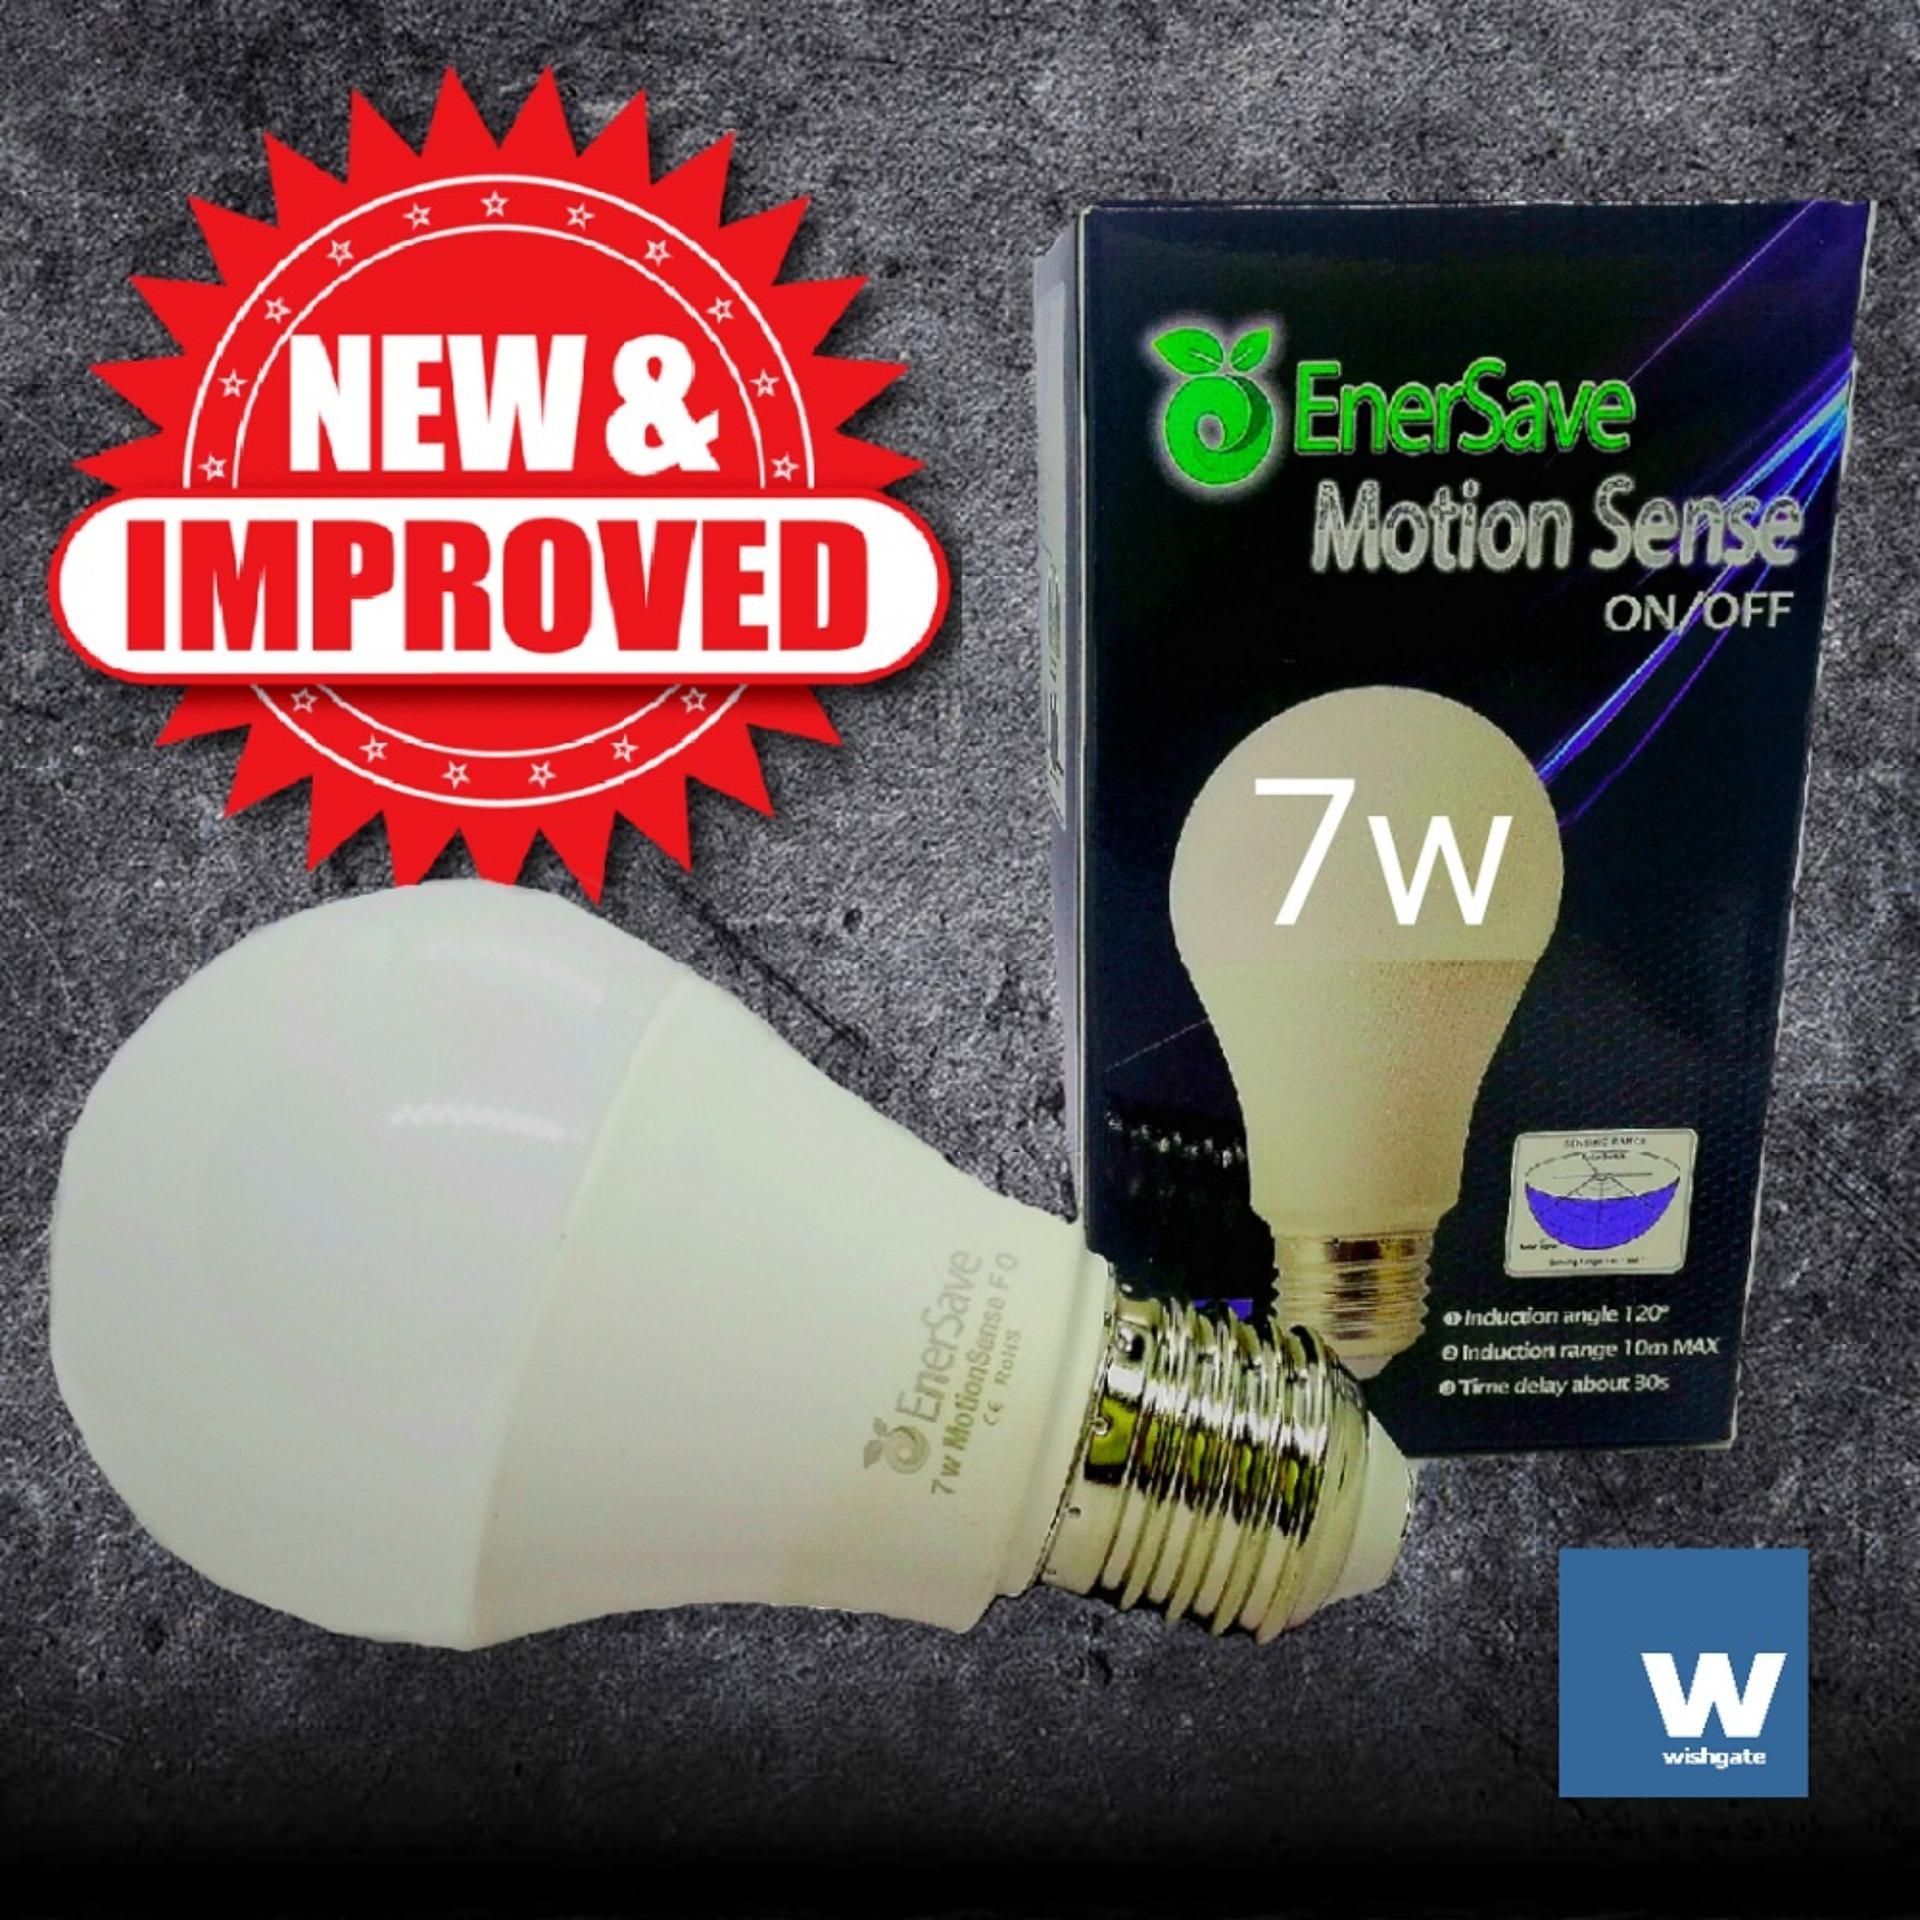 Light Bulbs For Sale Led Prices Brands Review In Automatic Low Power Emergency Wishgate Enersave Motion Sense Fo Bulb On When Movement Is Detected